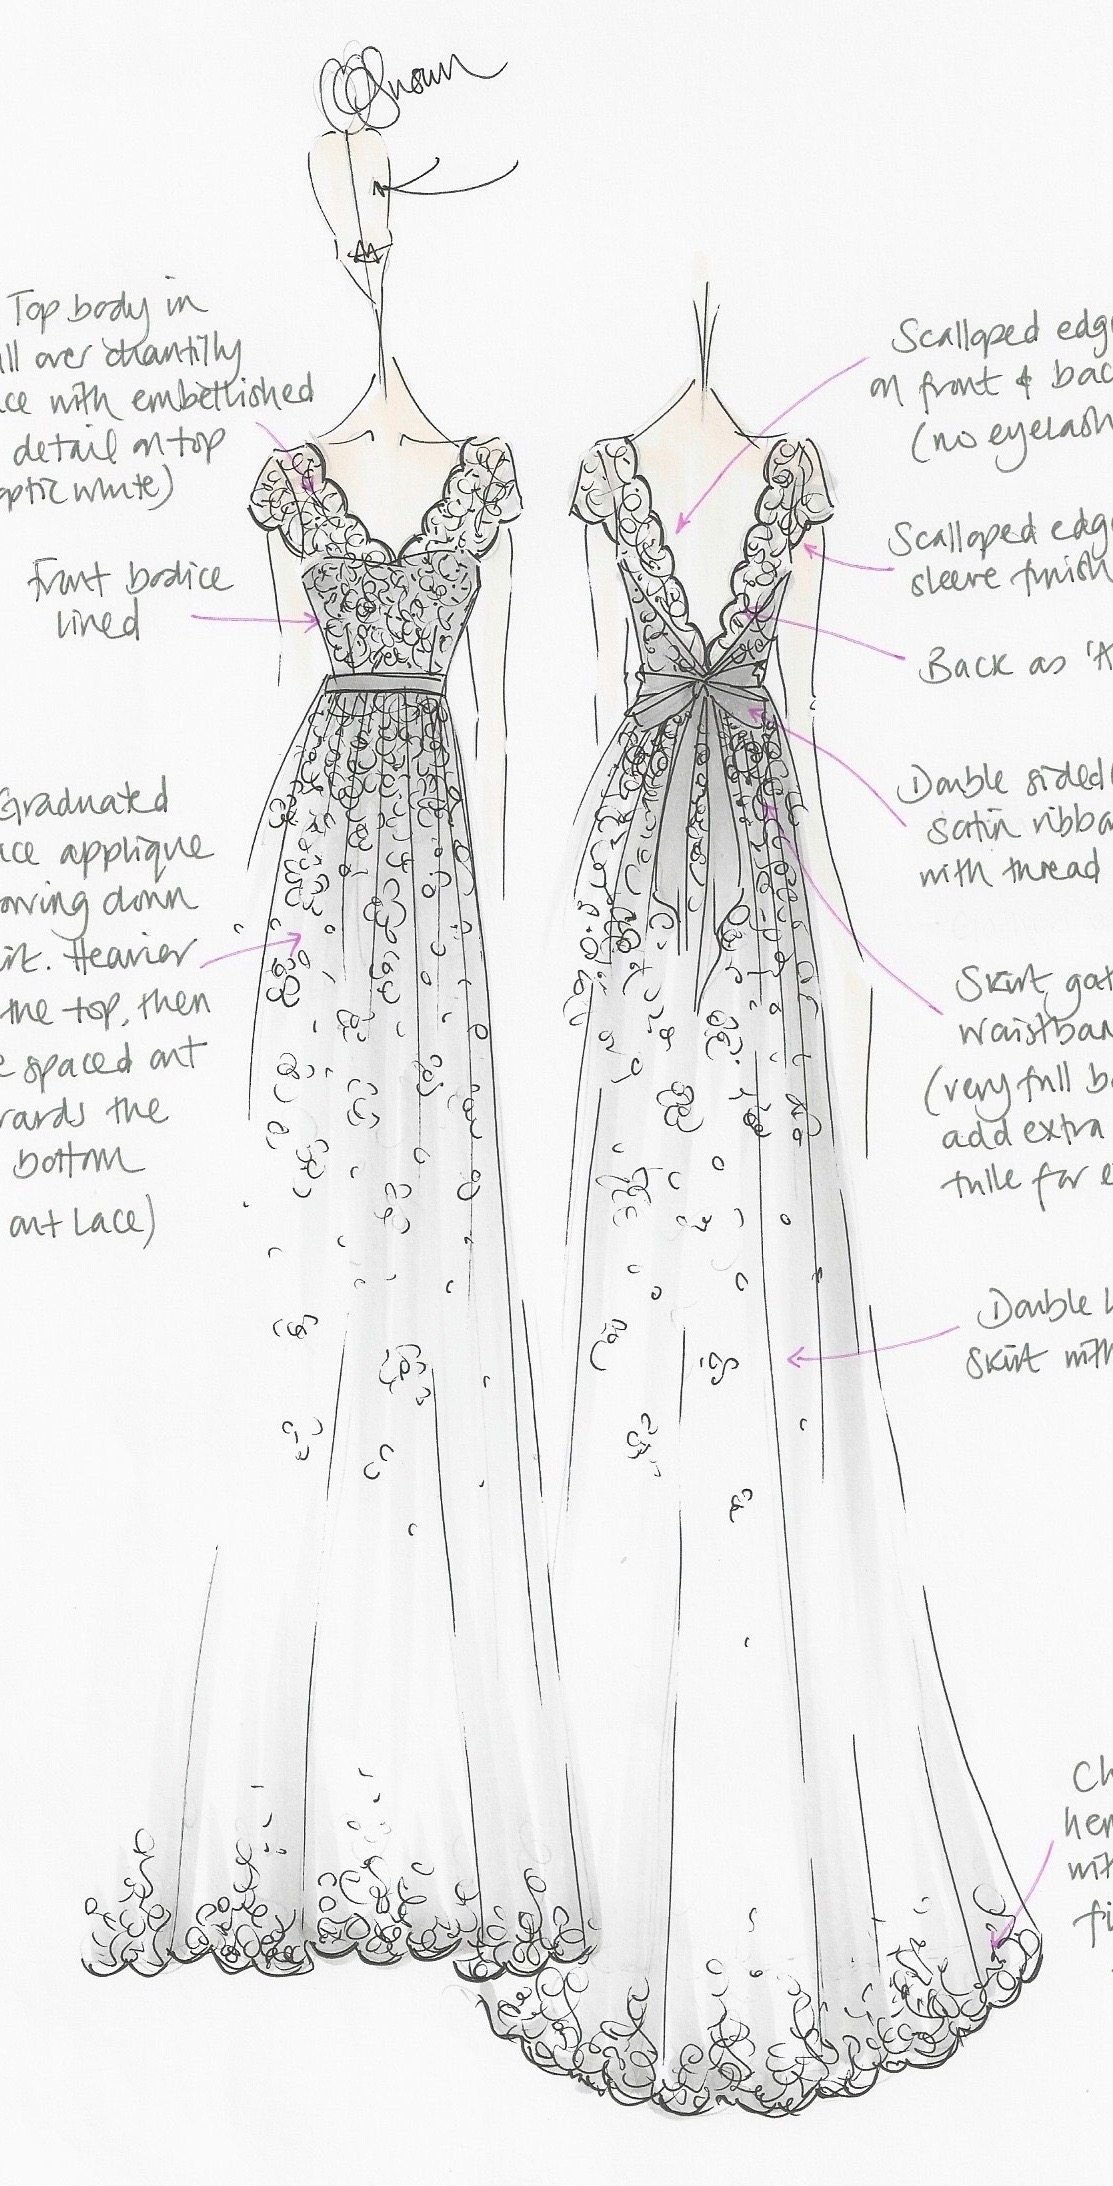 Our bespoke sketch